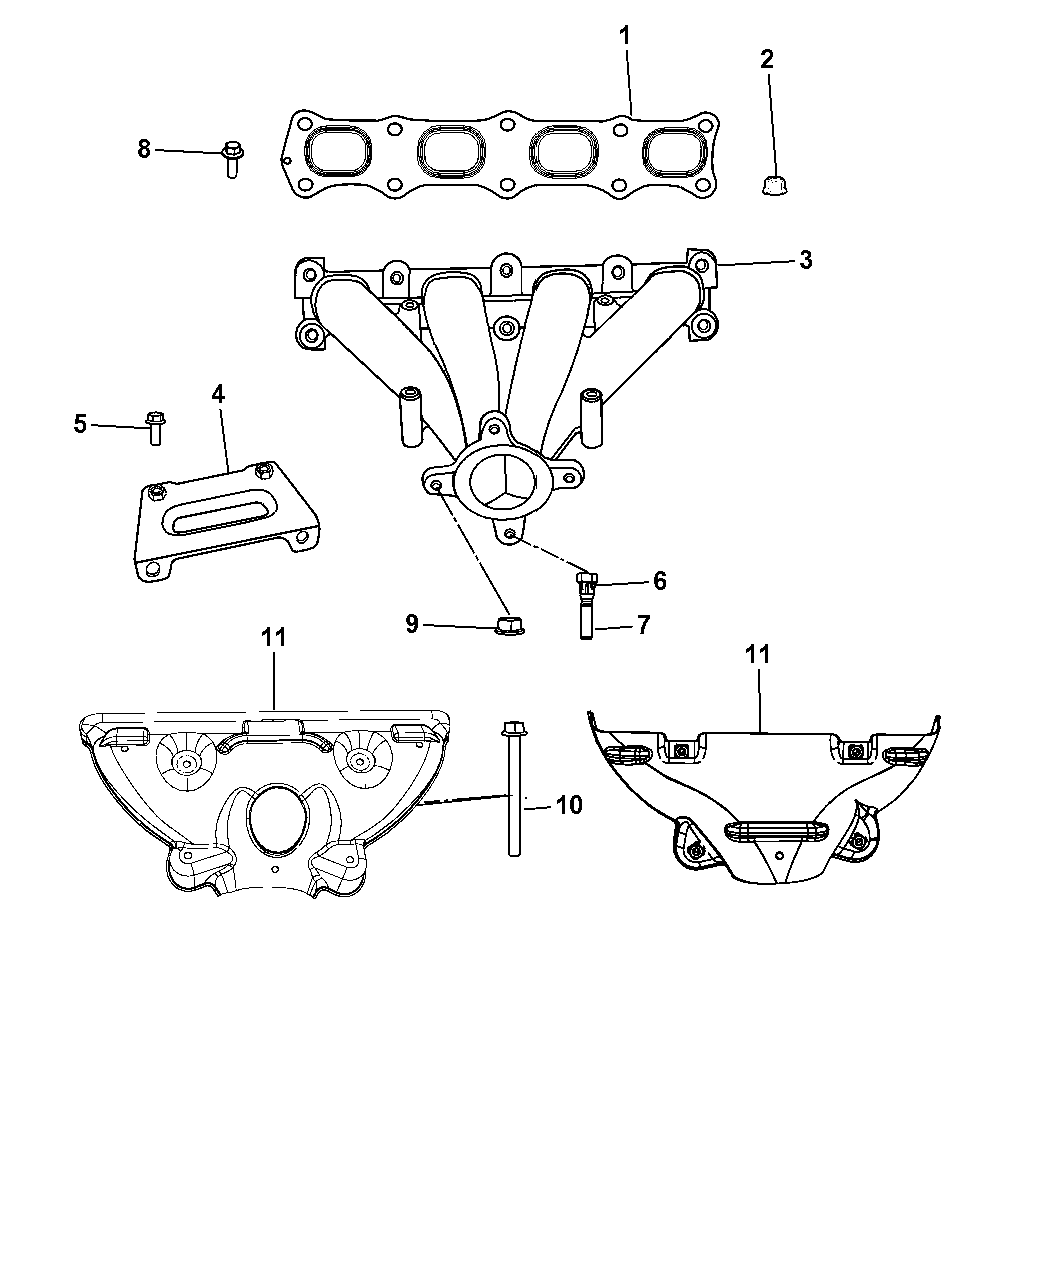 2009 Dodge Avenger Exhaust Manifold Turbo Charger Assembly Heat Engine Diagram Shields Thumbnail 1